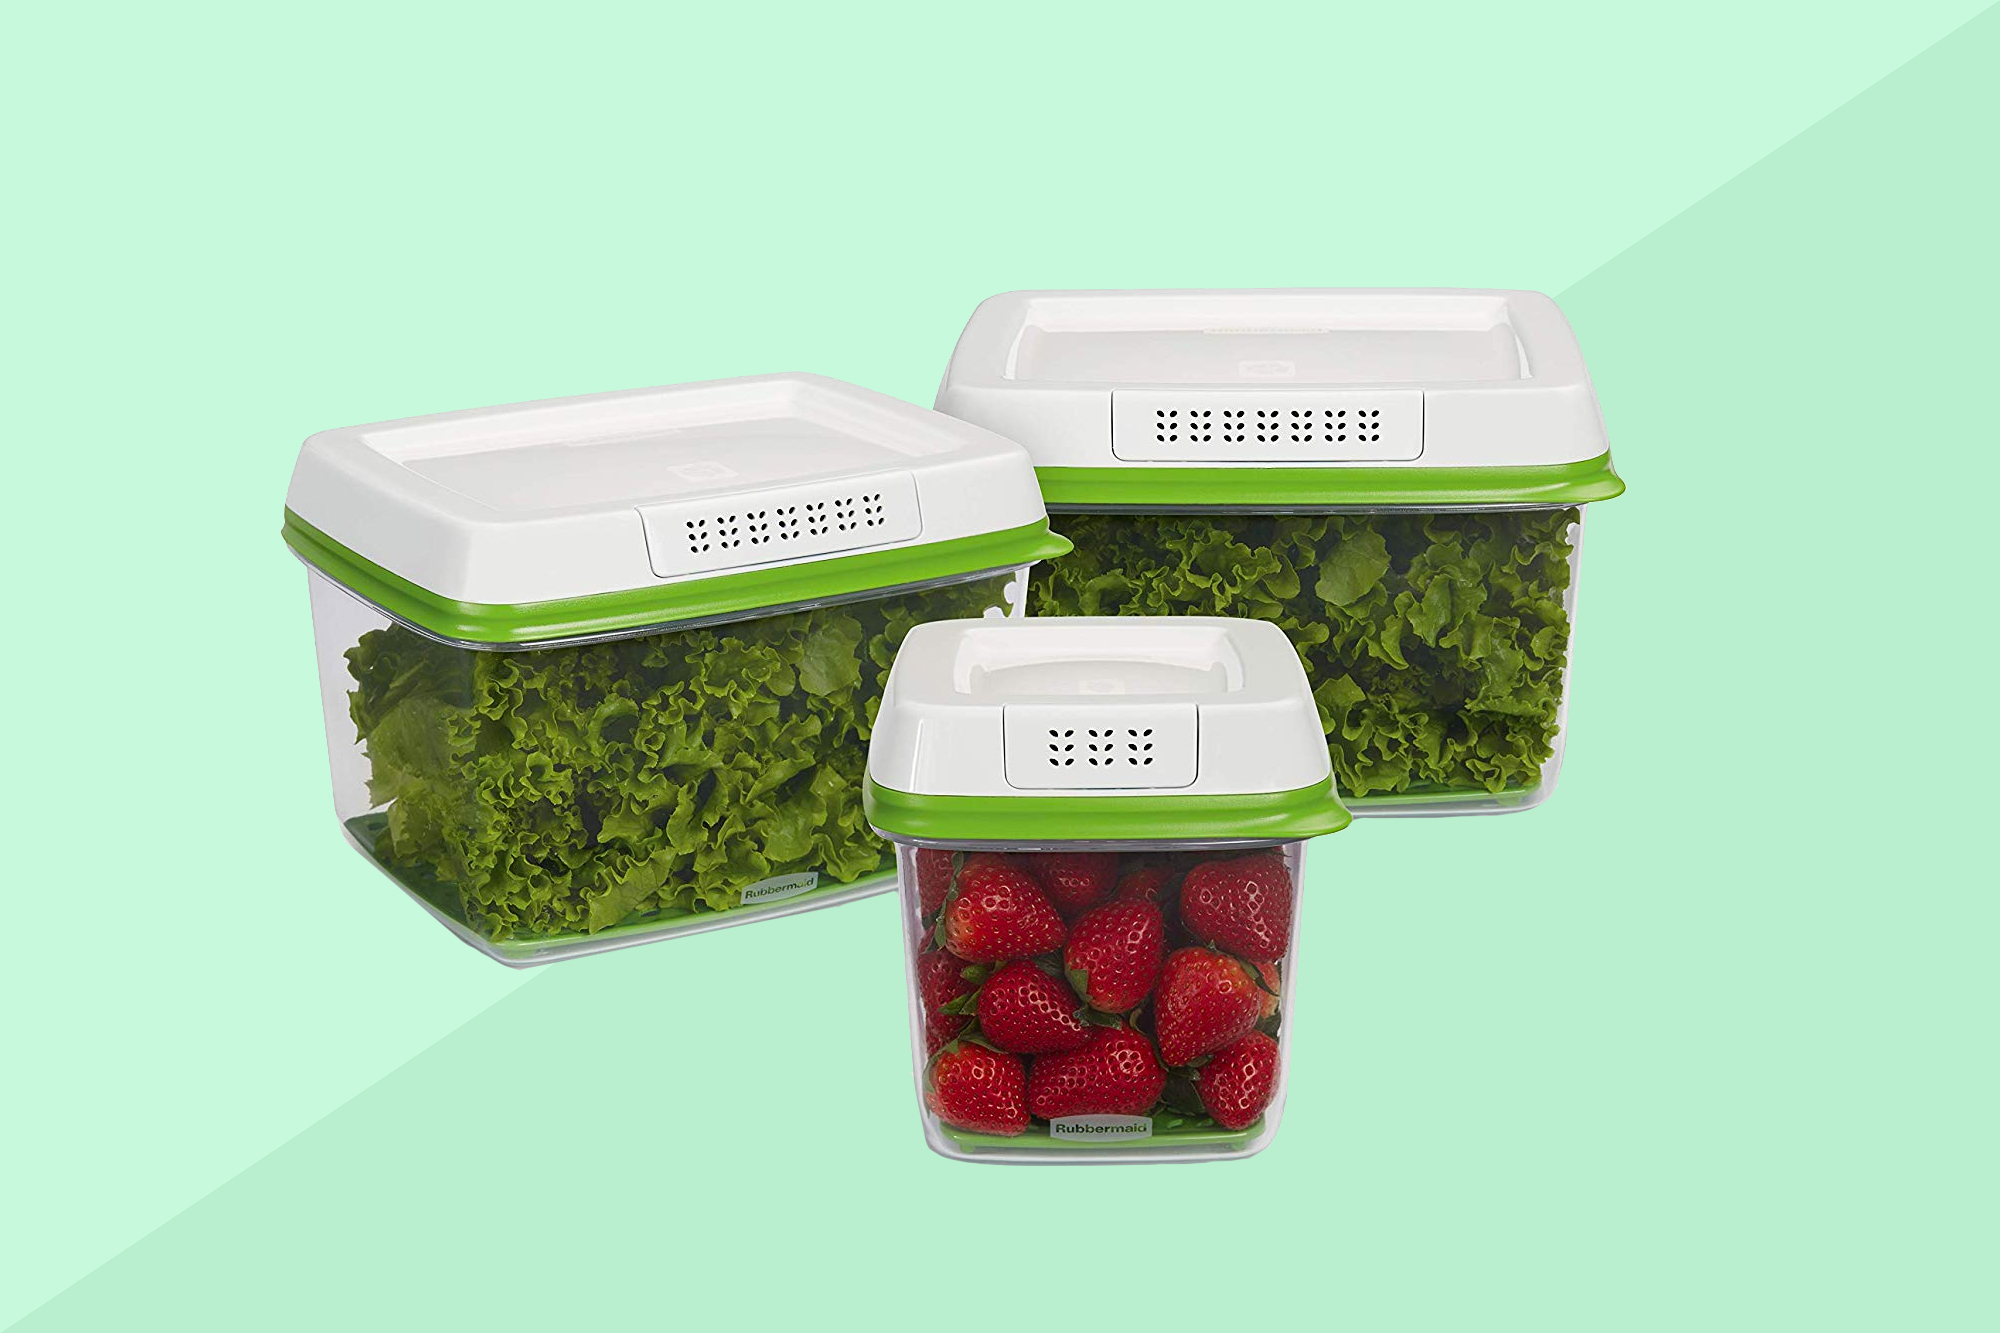 Rubbermaid's FreshWorks Produce Saver